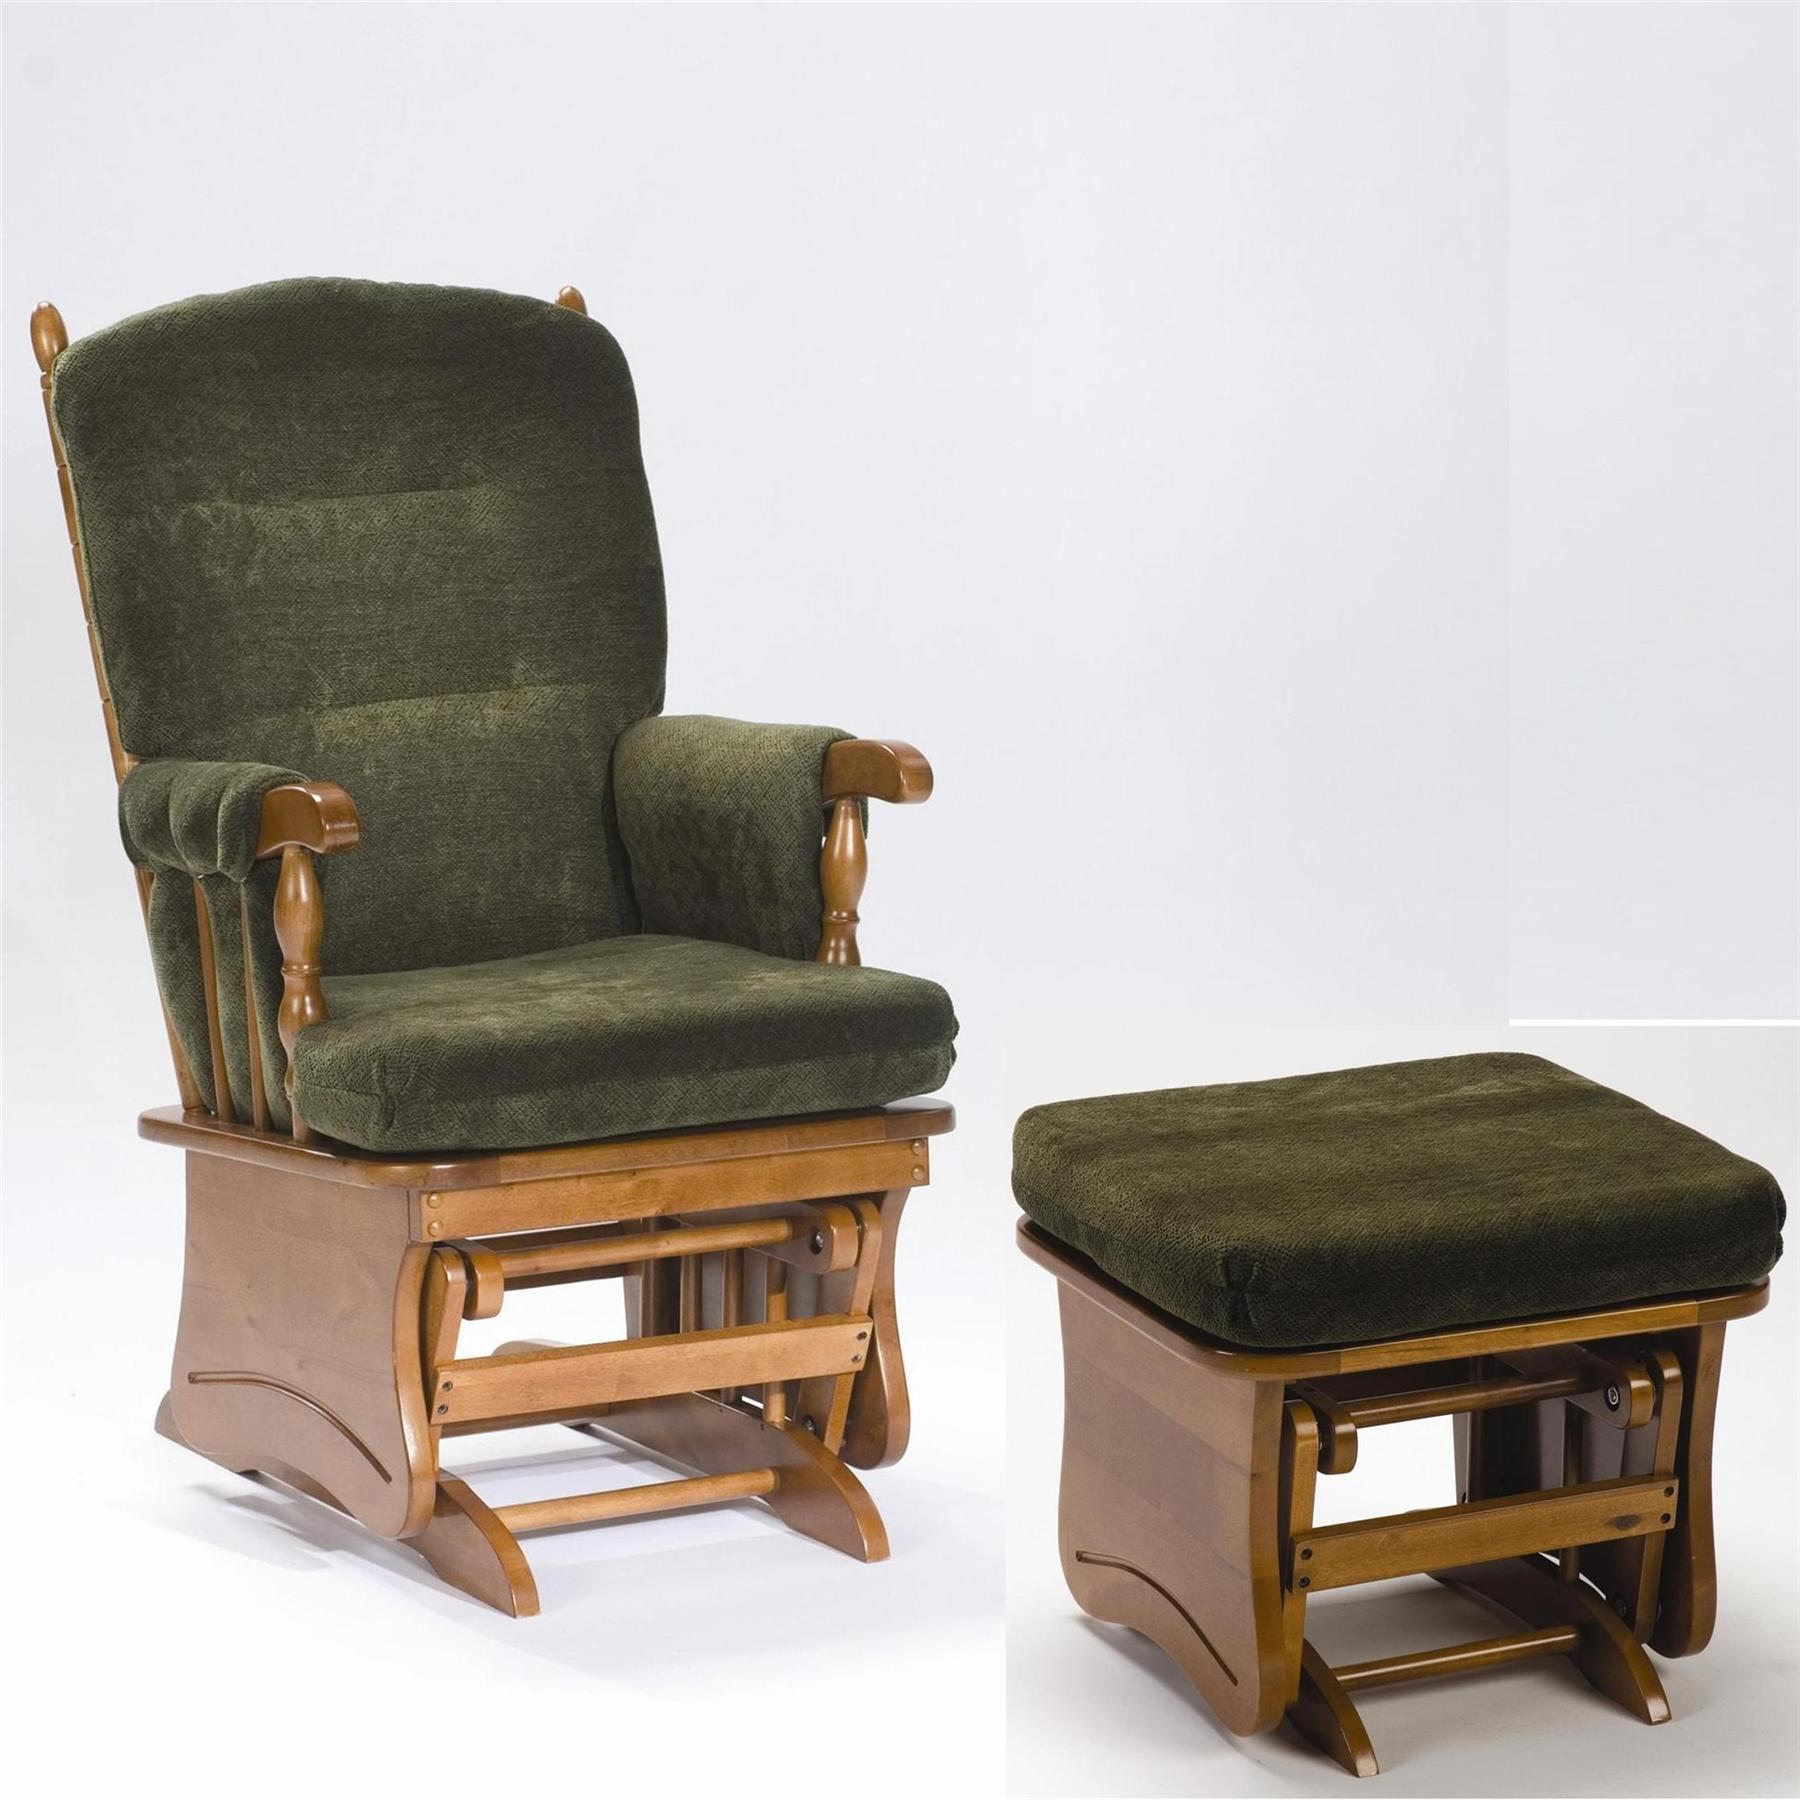 troutman rocking chairs natural gear chair glider rockers